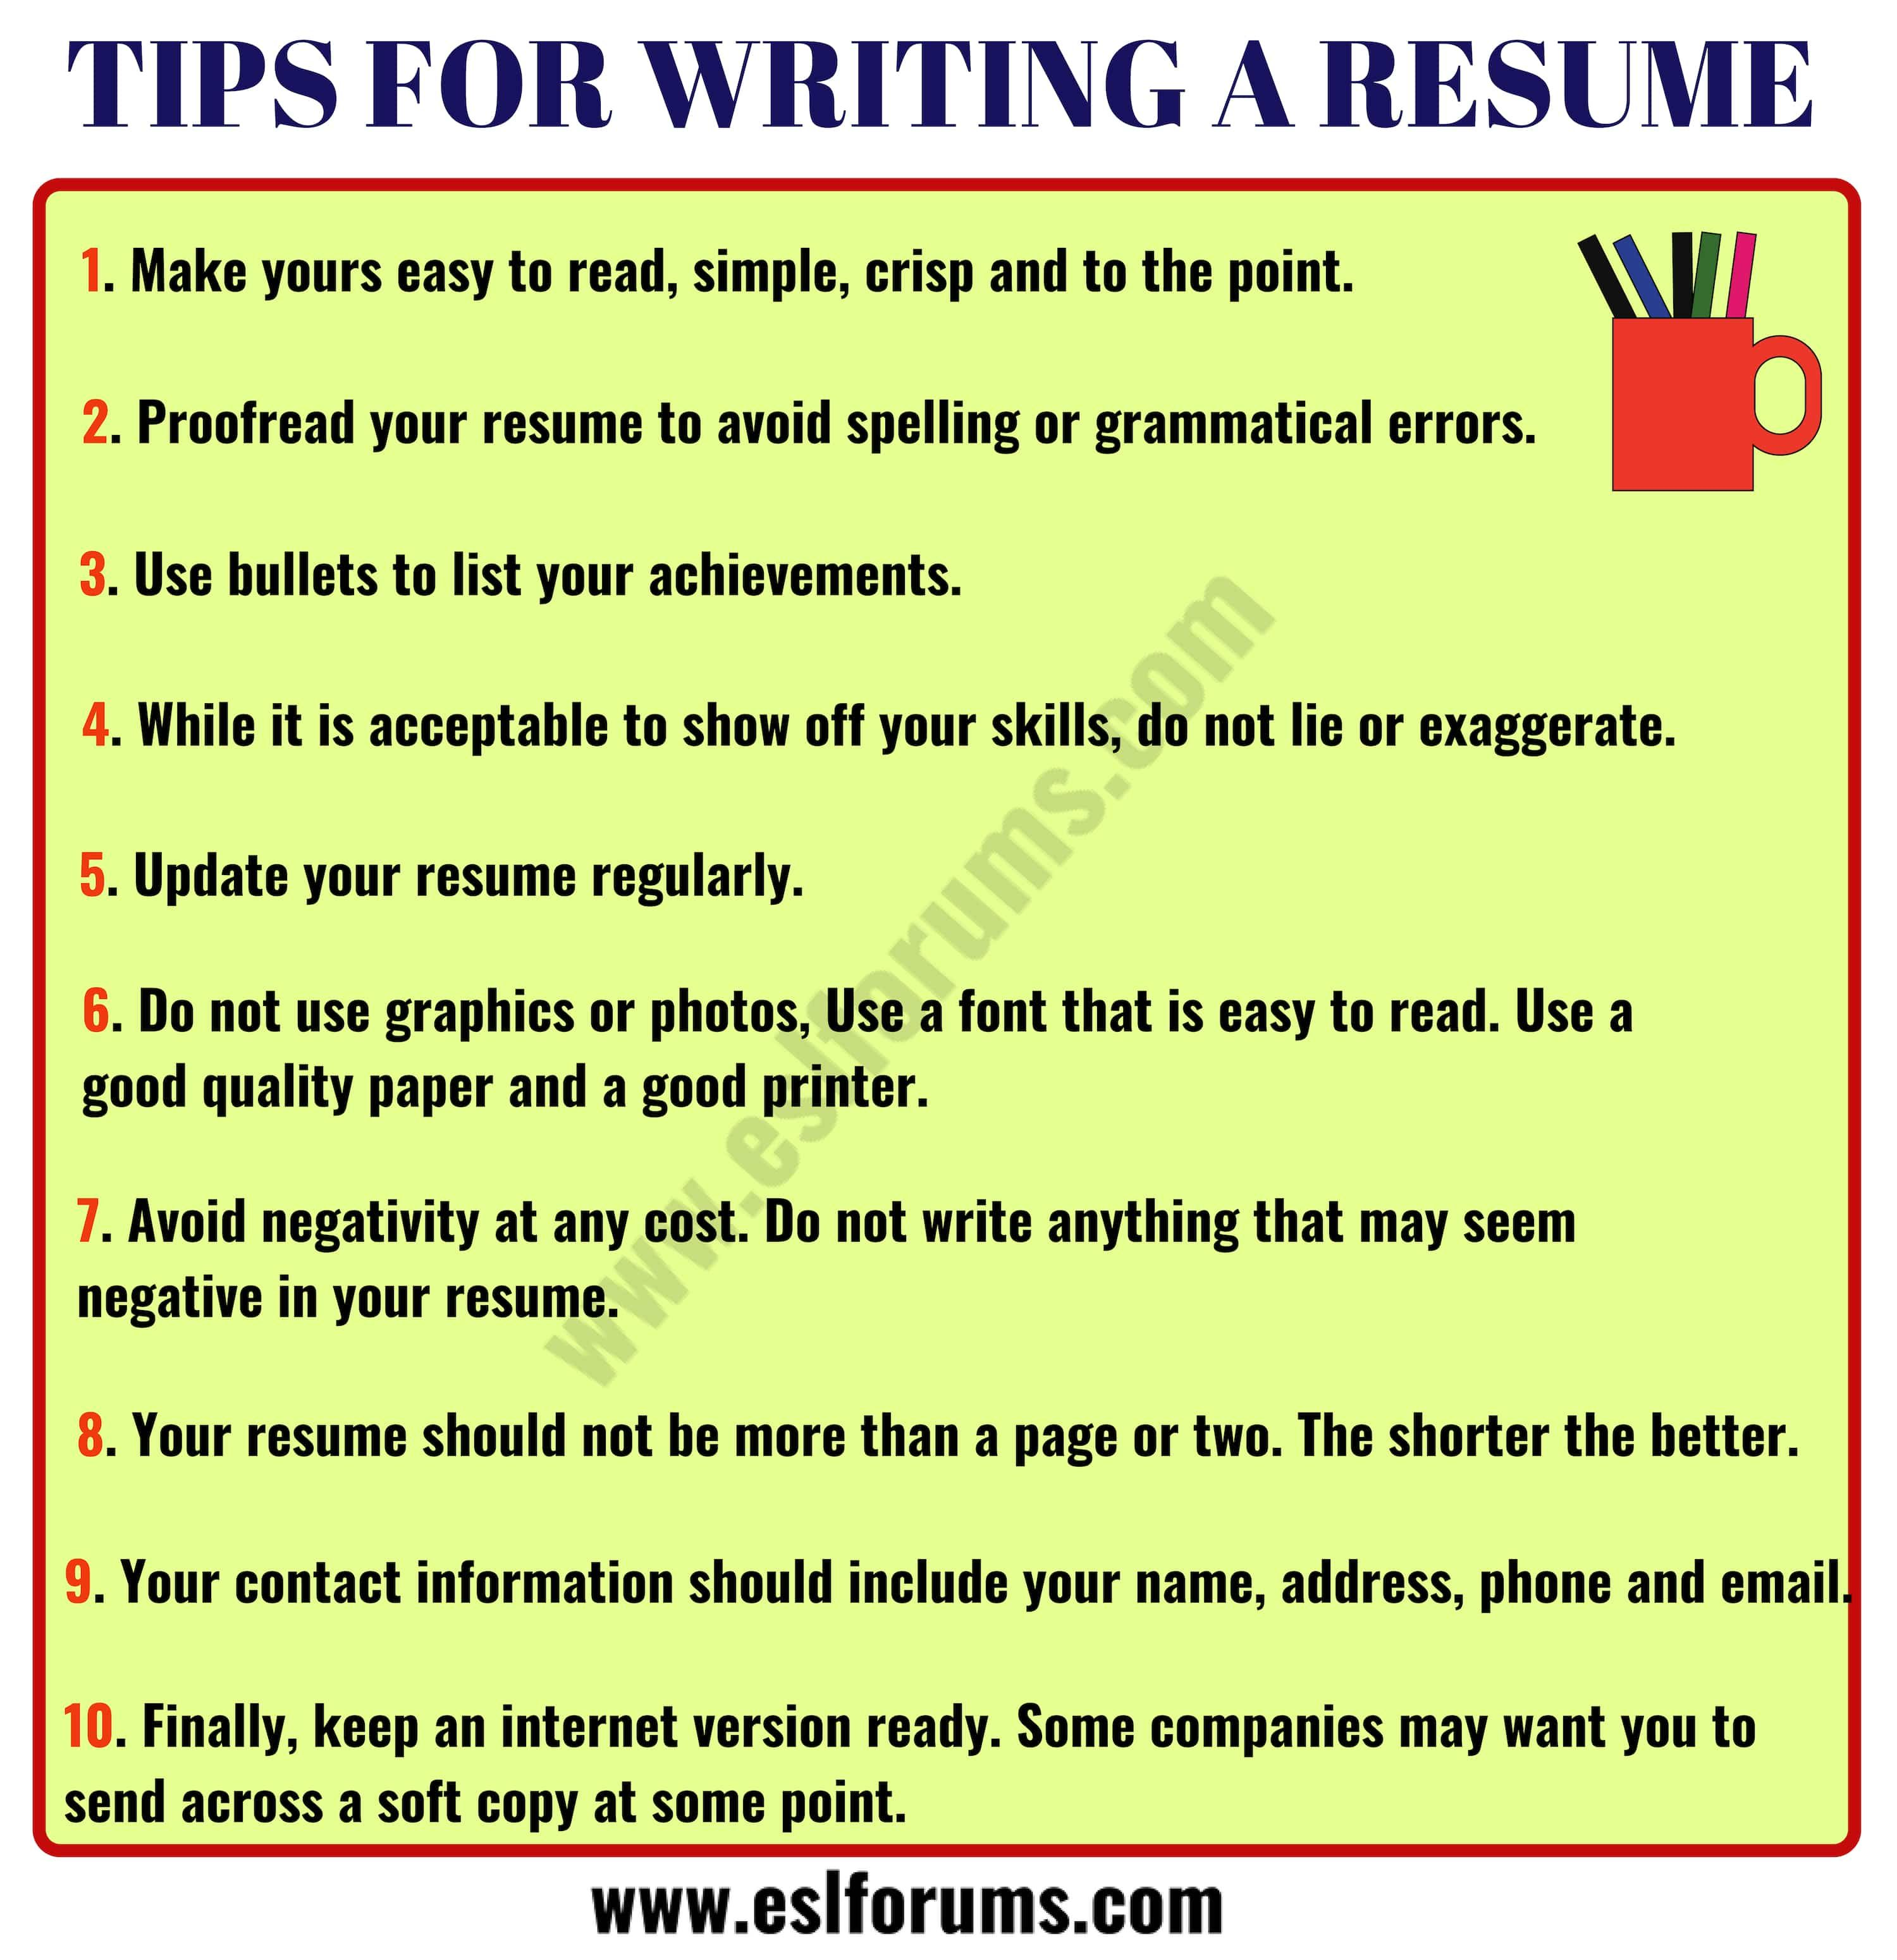 Resume tips how to write a professional resume esl